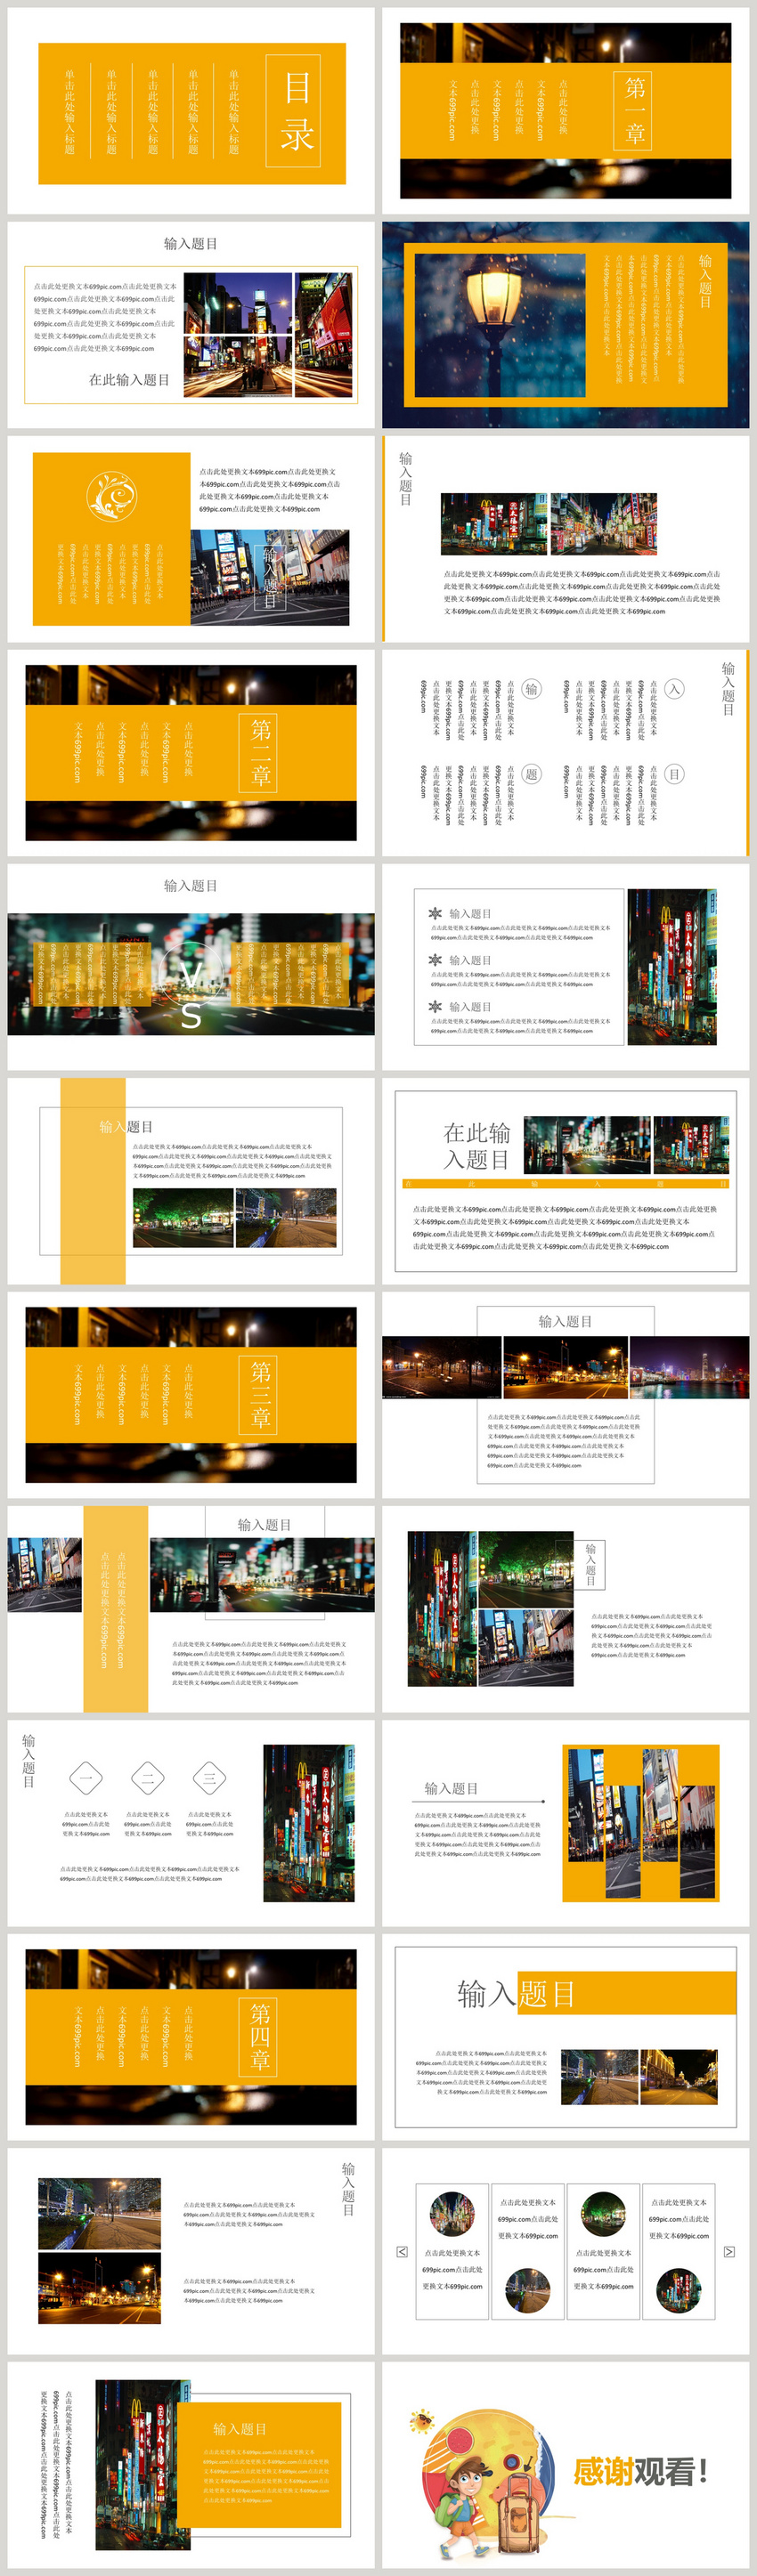 travel guide ppt template